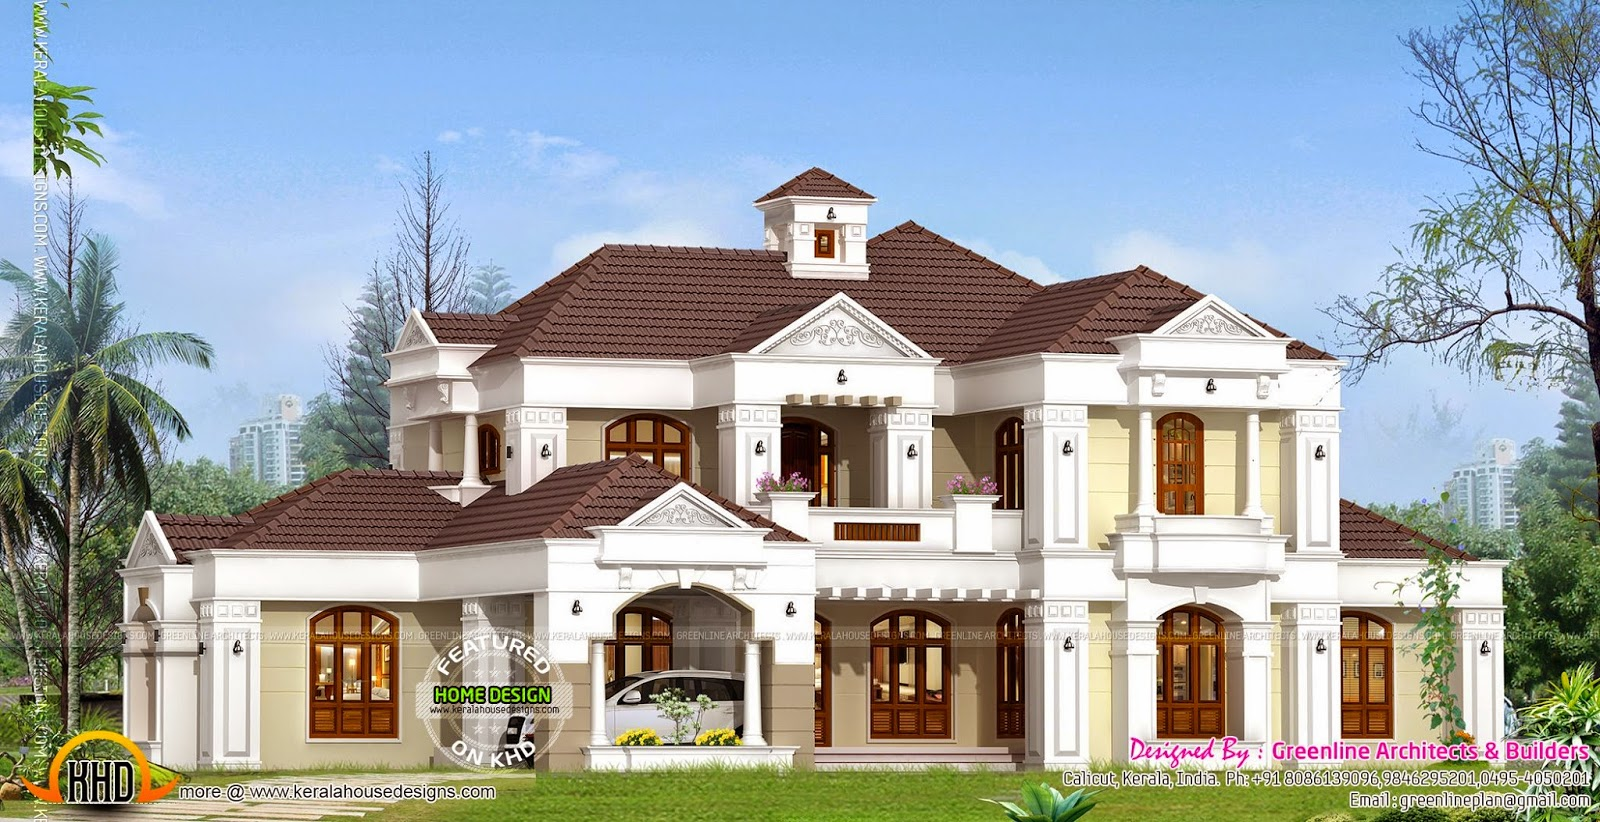 Luxury villa exterior kerala home design and floor plans for Colonial style house plans kerala